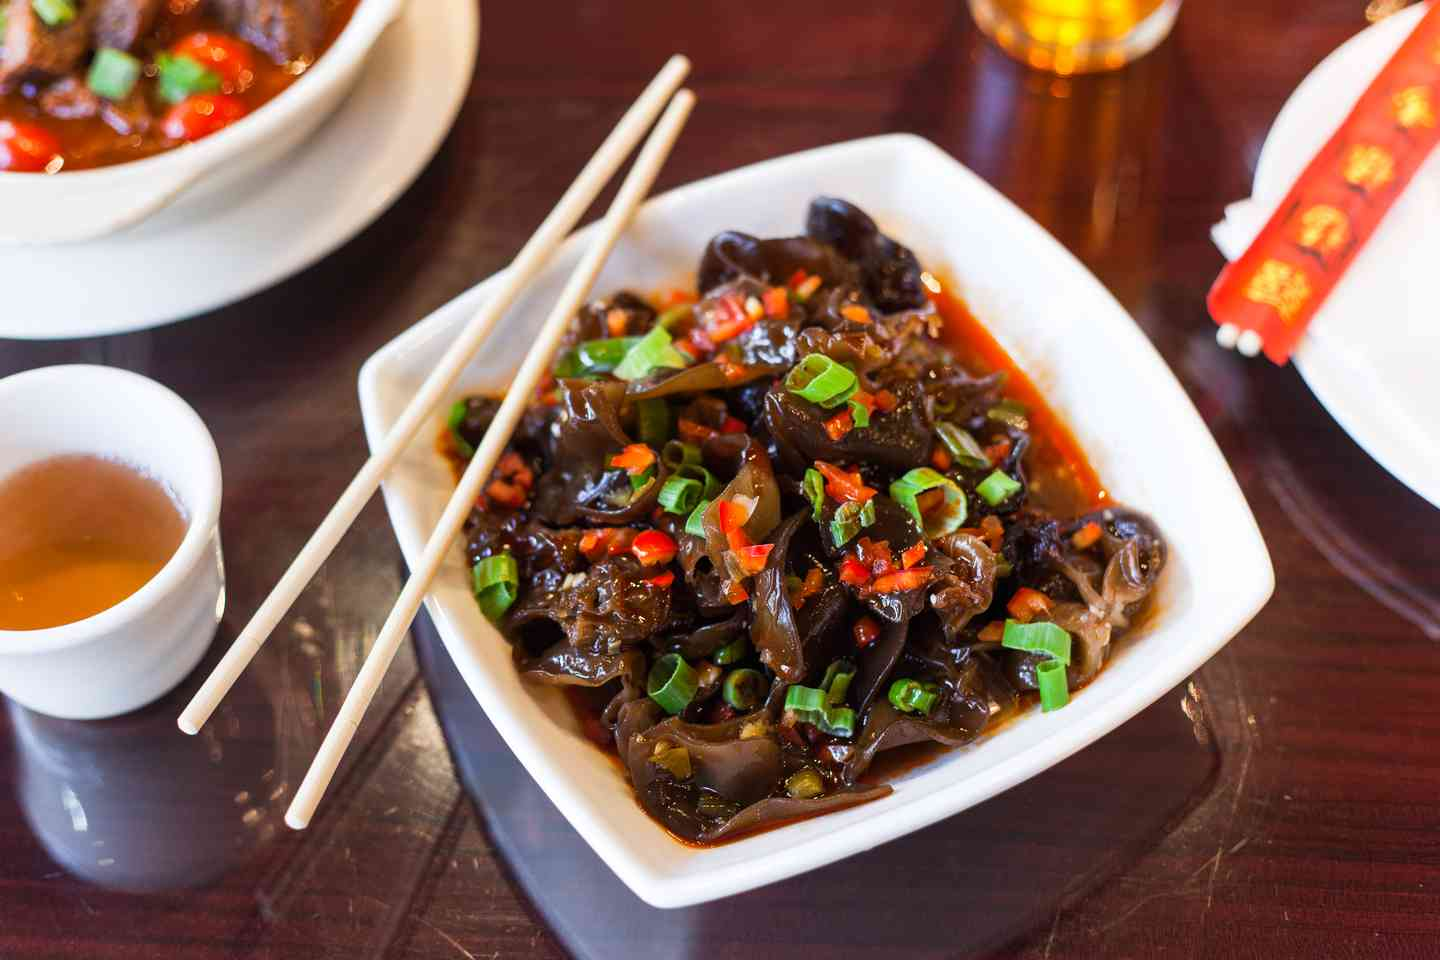 Chinese Black Fungus (wood ears)